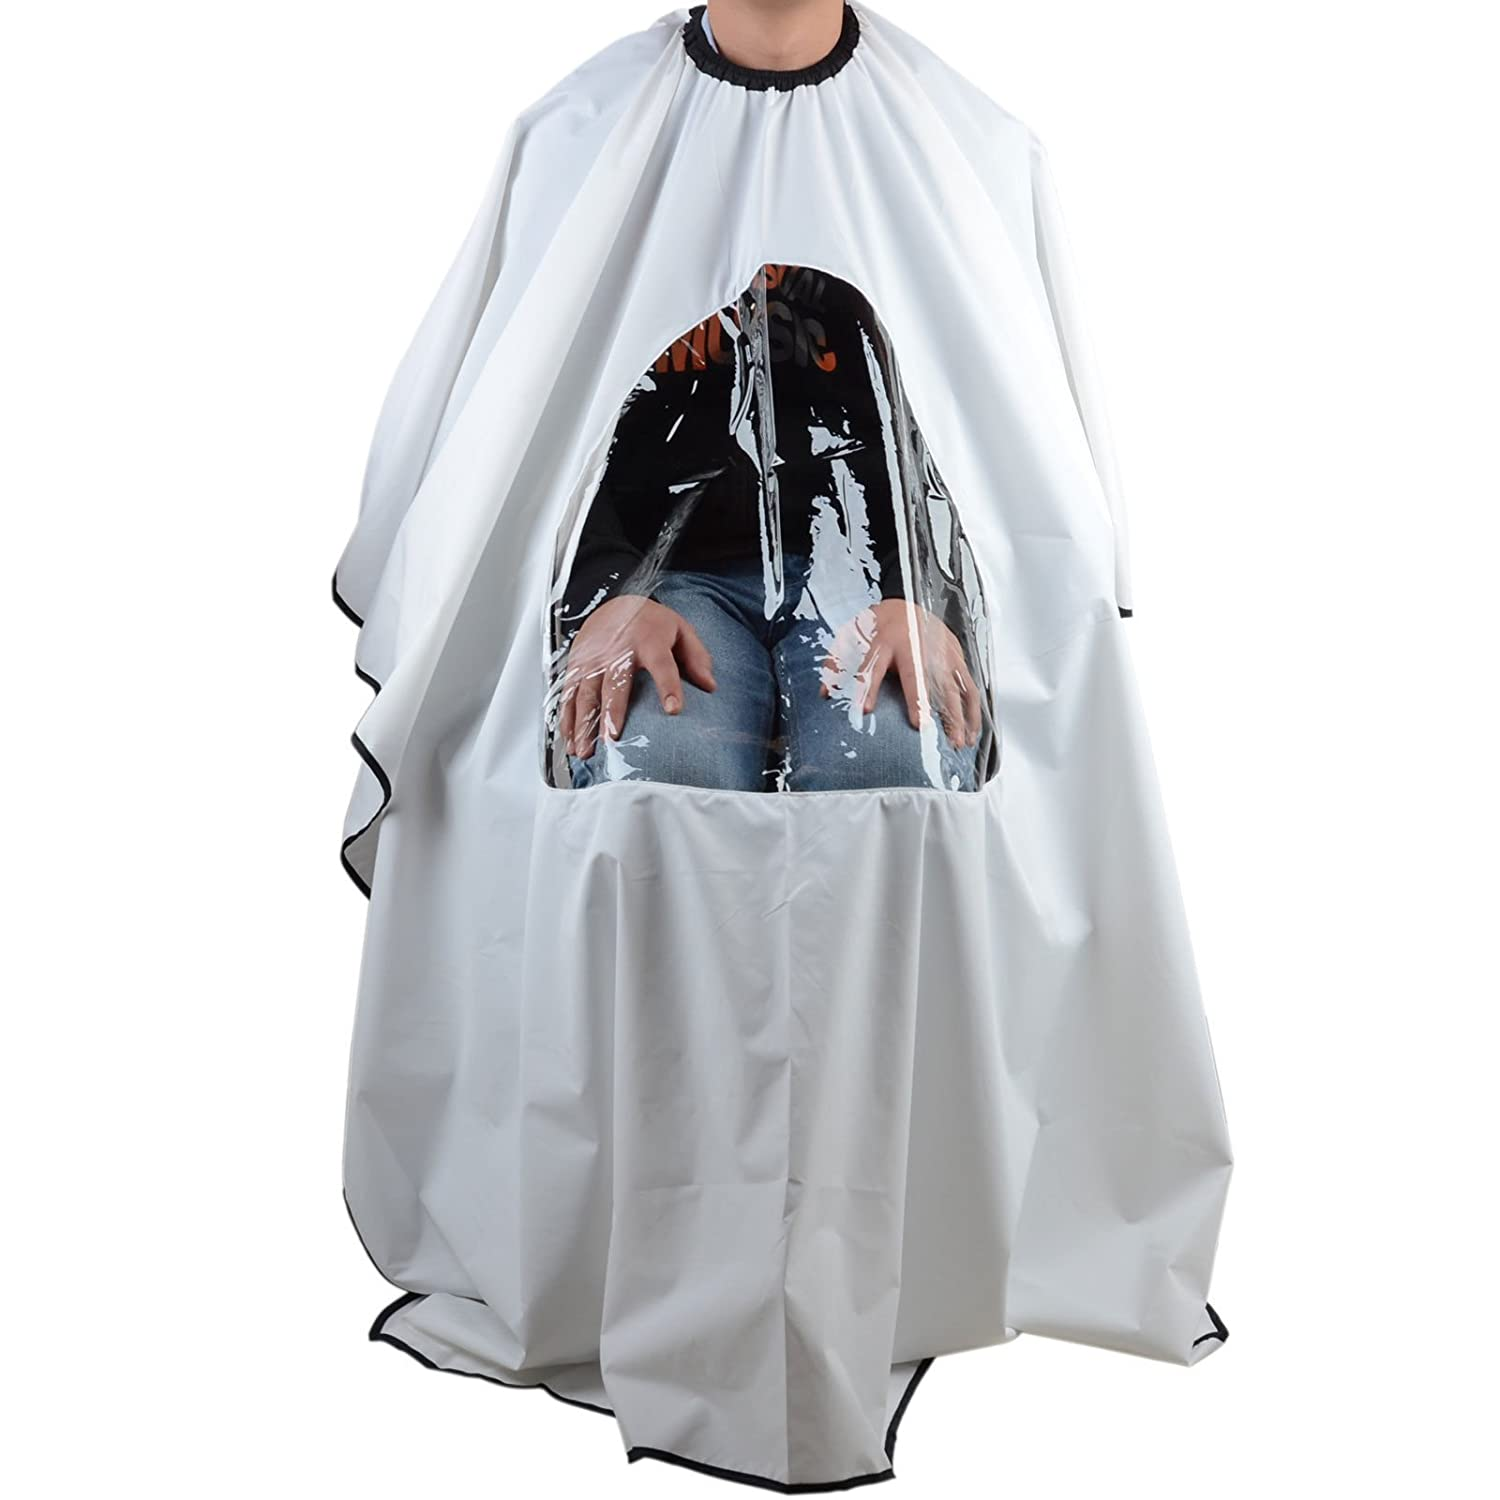 Salon Hair Cutting Cape Hairdressing Gown Viewing Window Wrap - White Generic